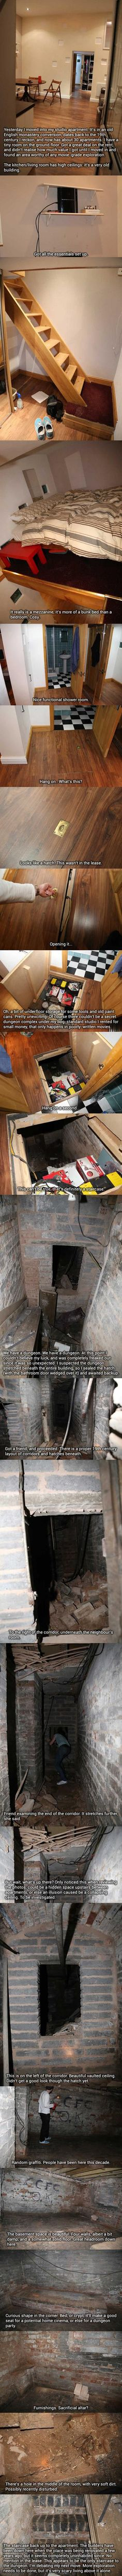 One could only wish. Amazing Secret Dungeon discovered under my new apartment…